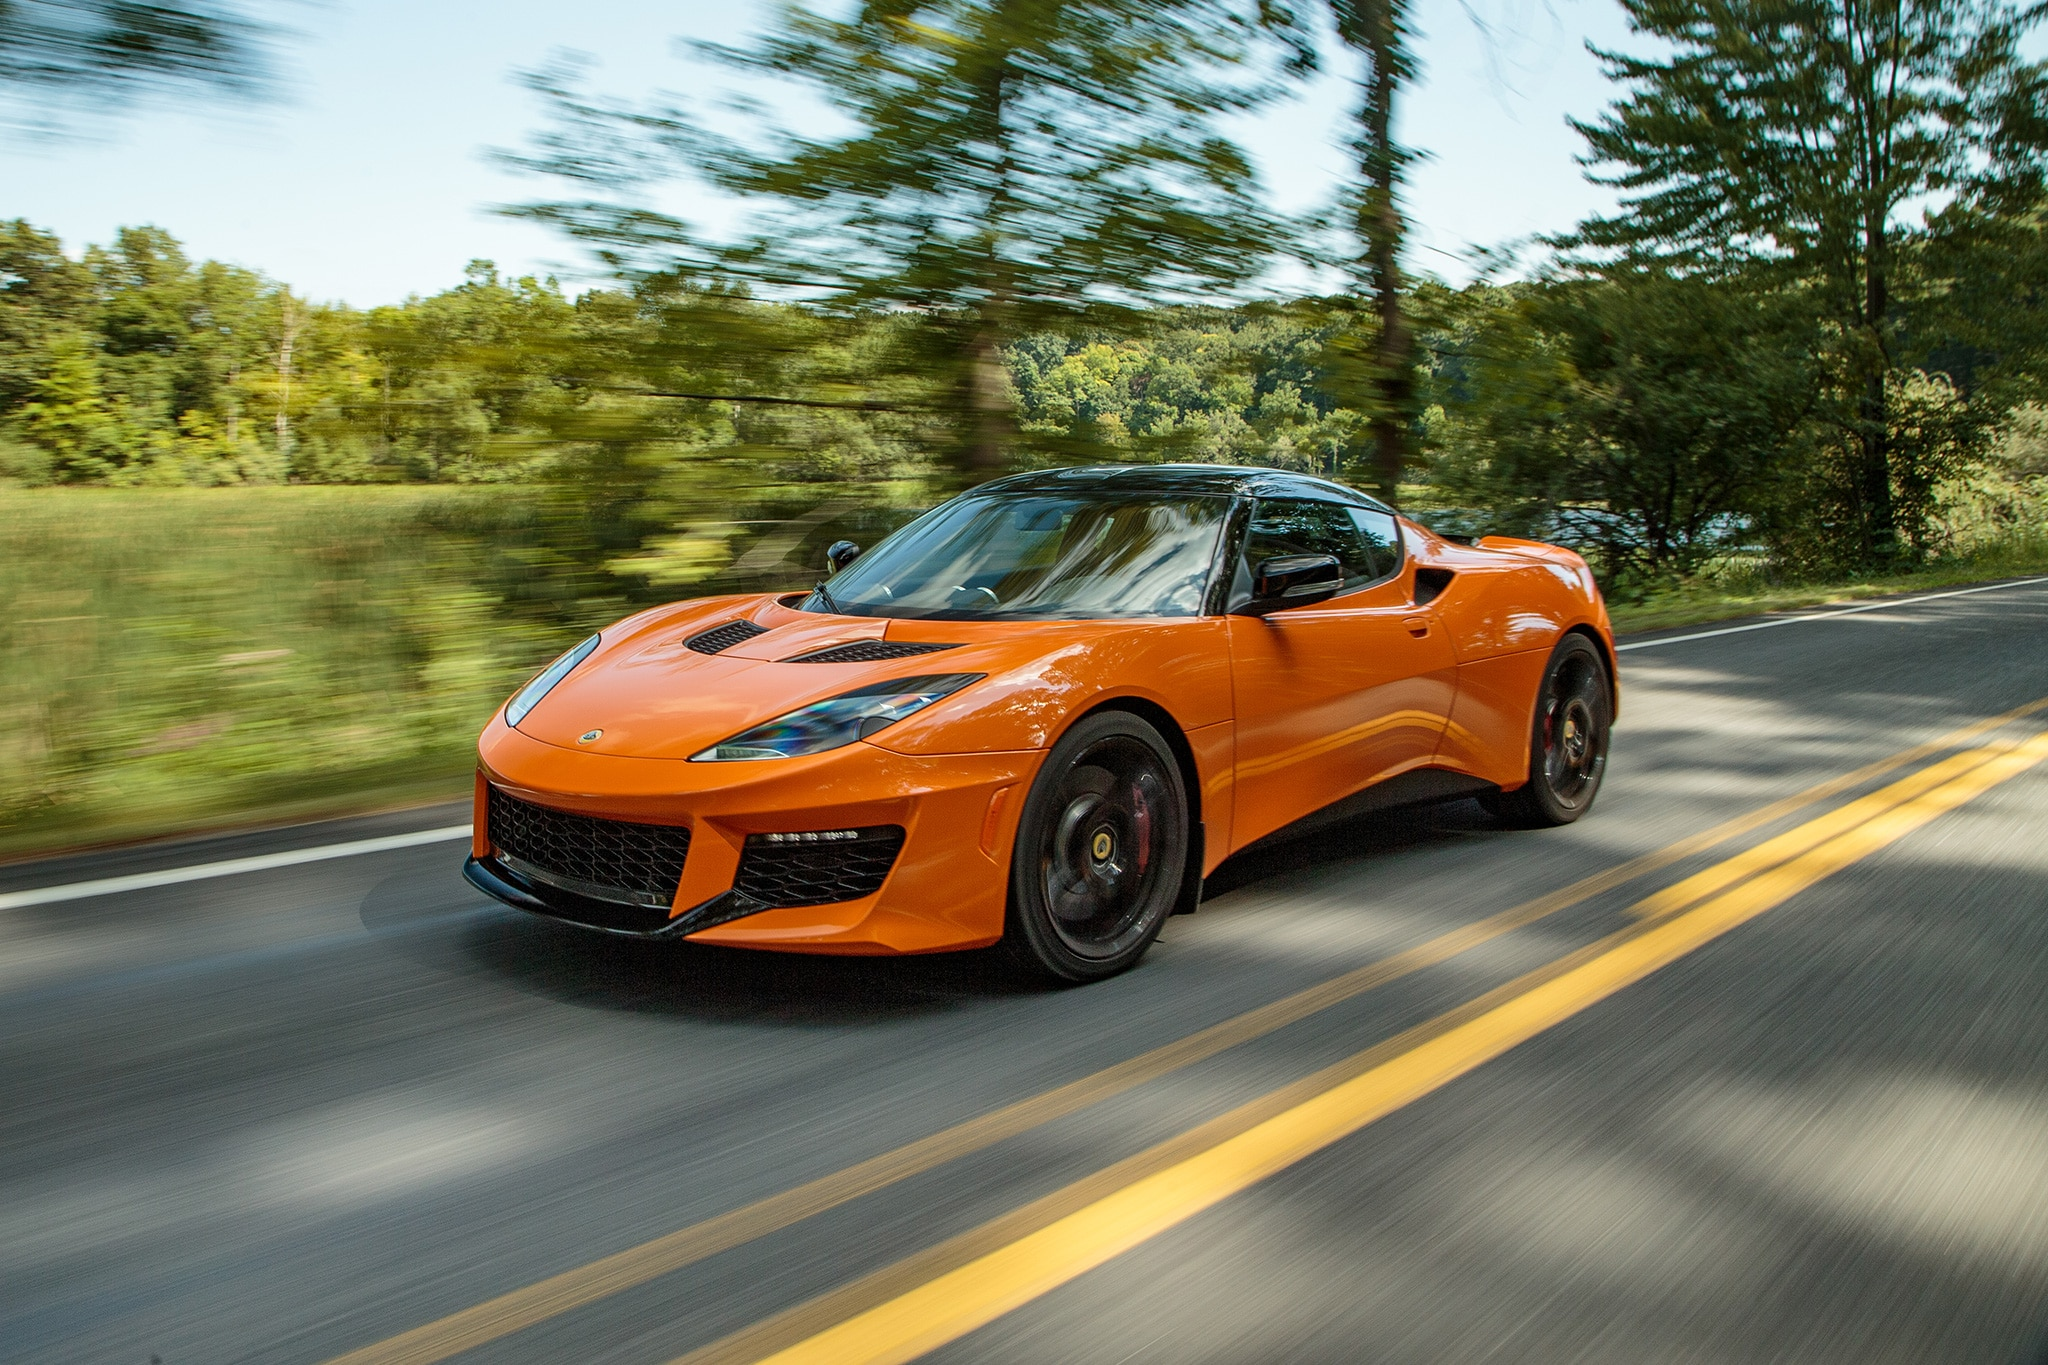 2017 Lotus Evora 400 First Drive | Automobile Magazine